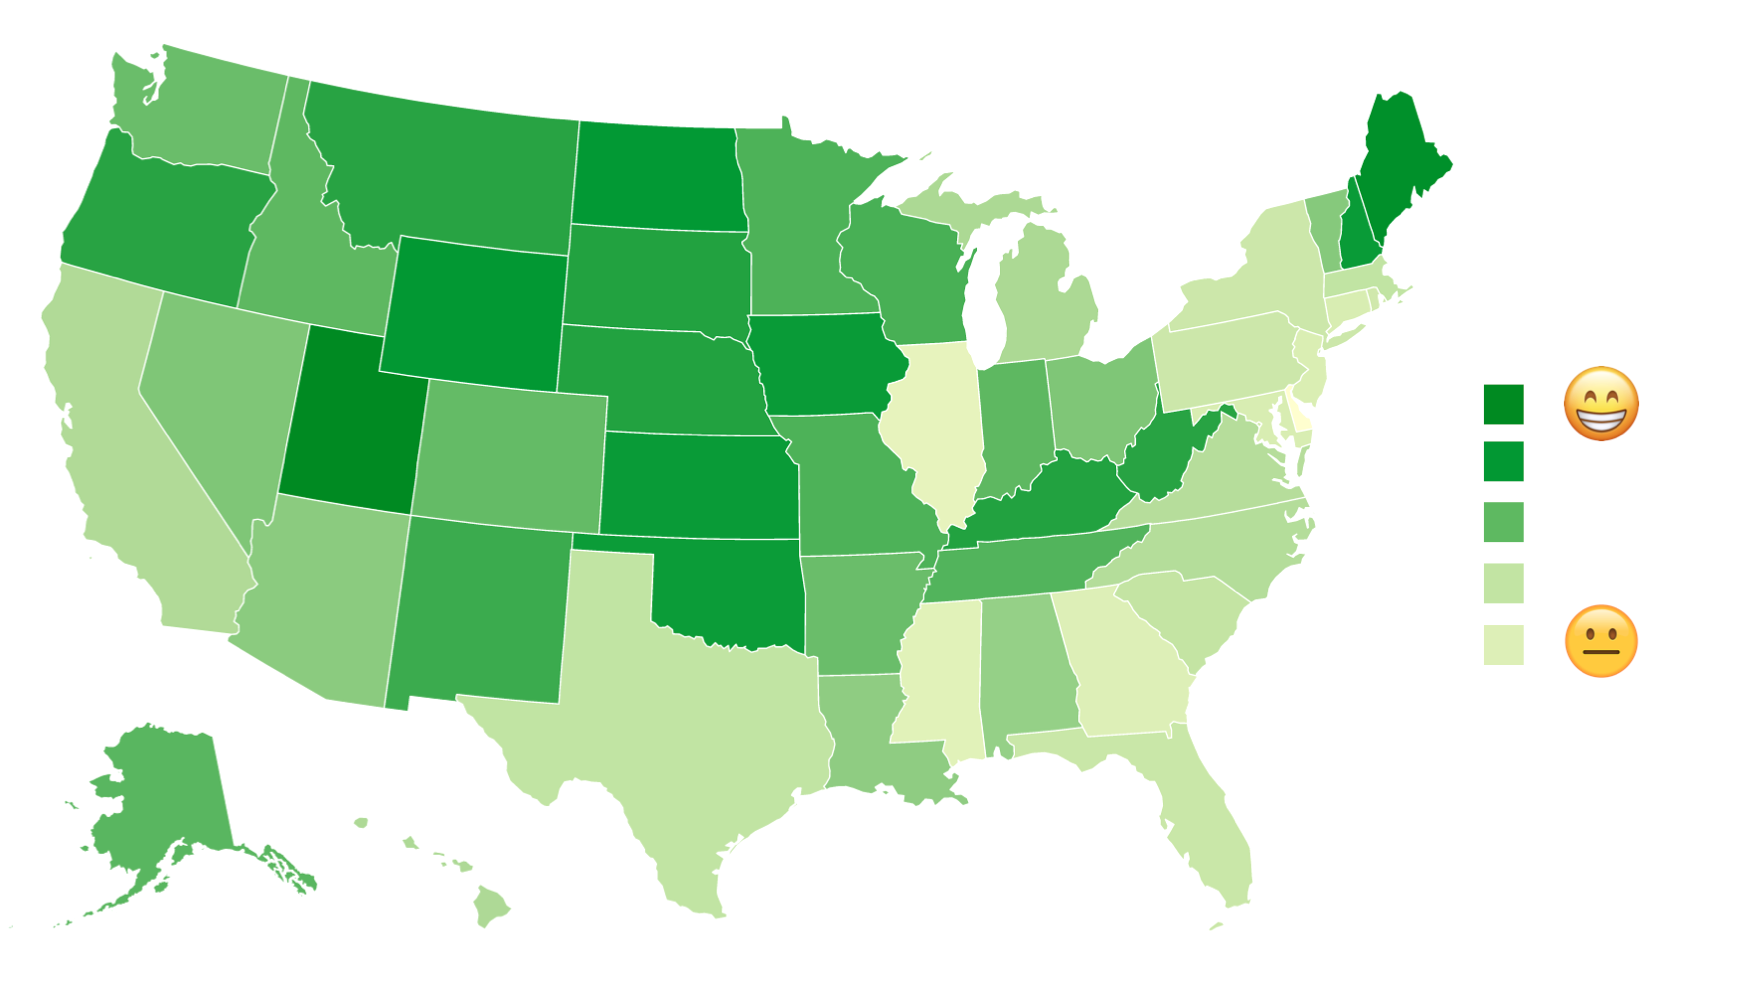 Heat map reveals happiest places in the US